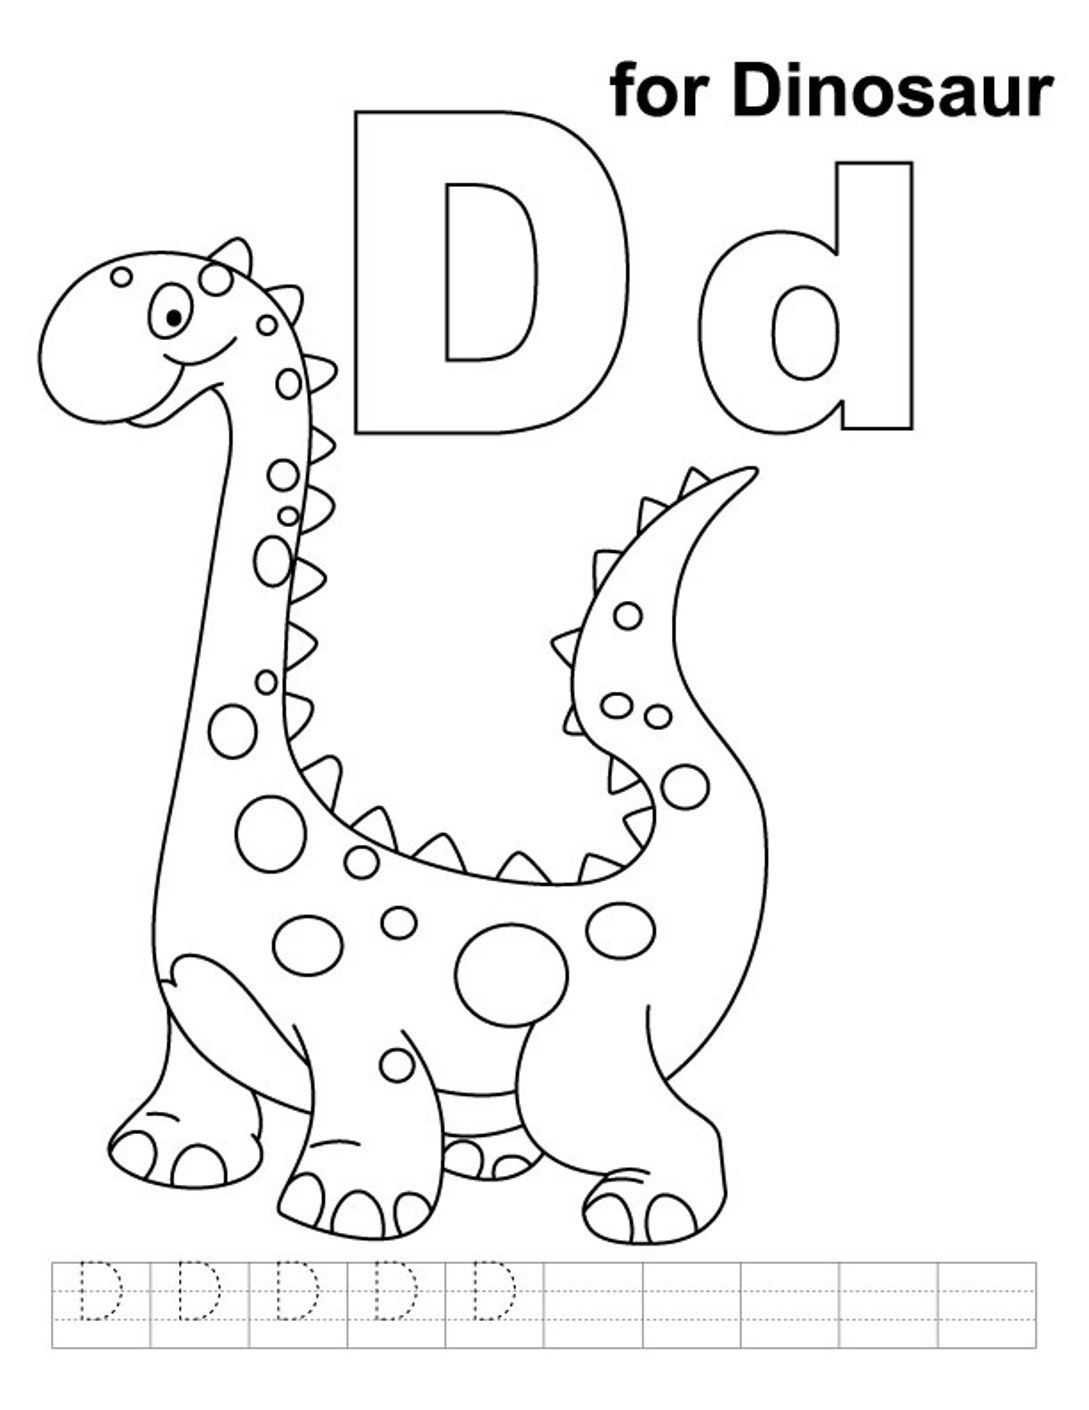 Dinosaur Printable Alphabet Coloring Pages Dinosaur Coloring